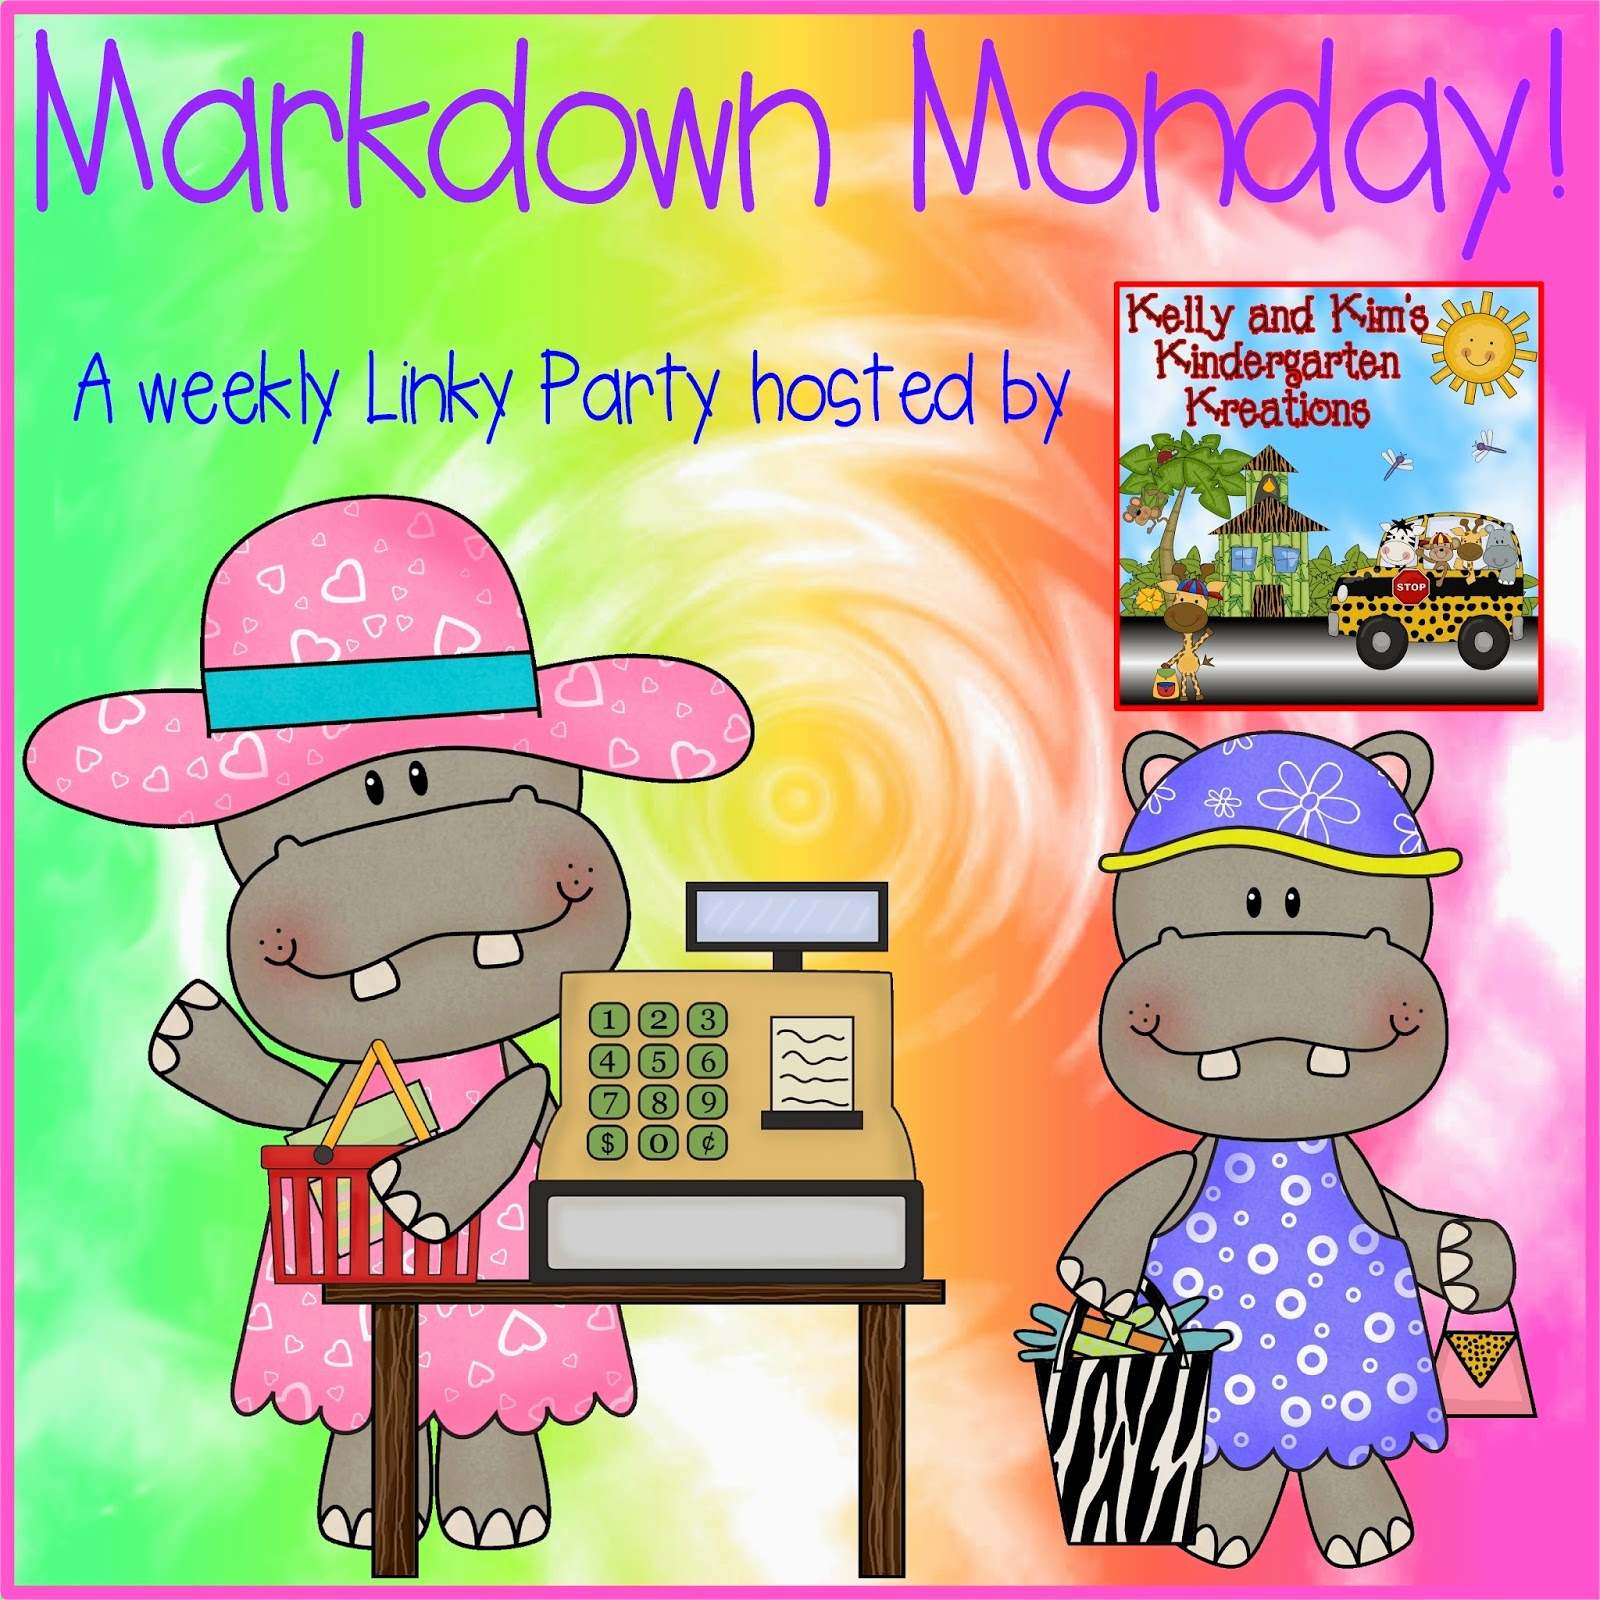 http://kellyandkimskindergarten.blogspot.com/2014/07/markdown-monday-linky-party-july-7th.html